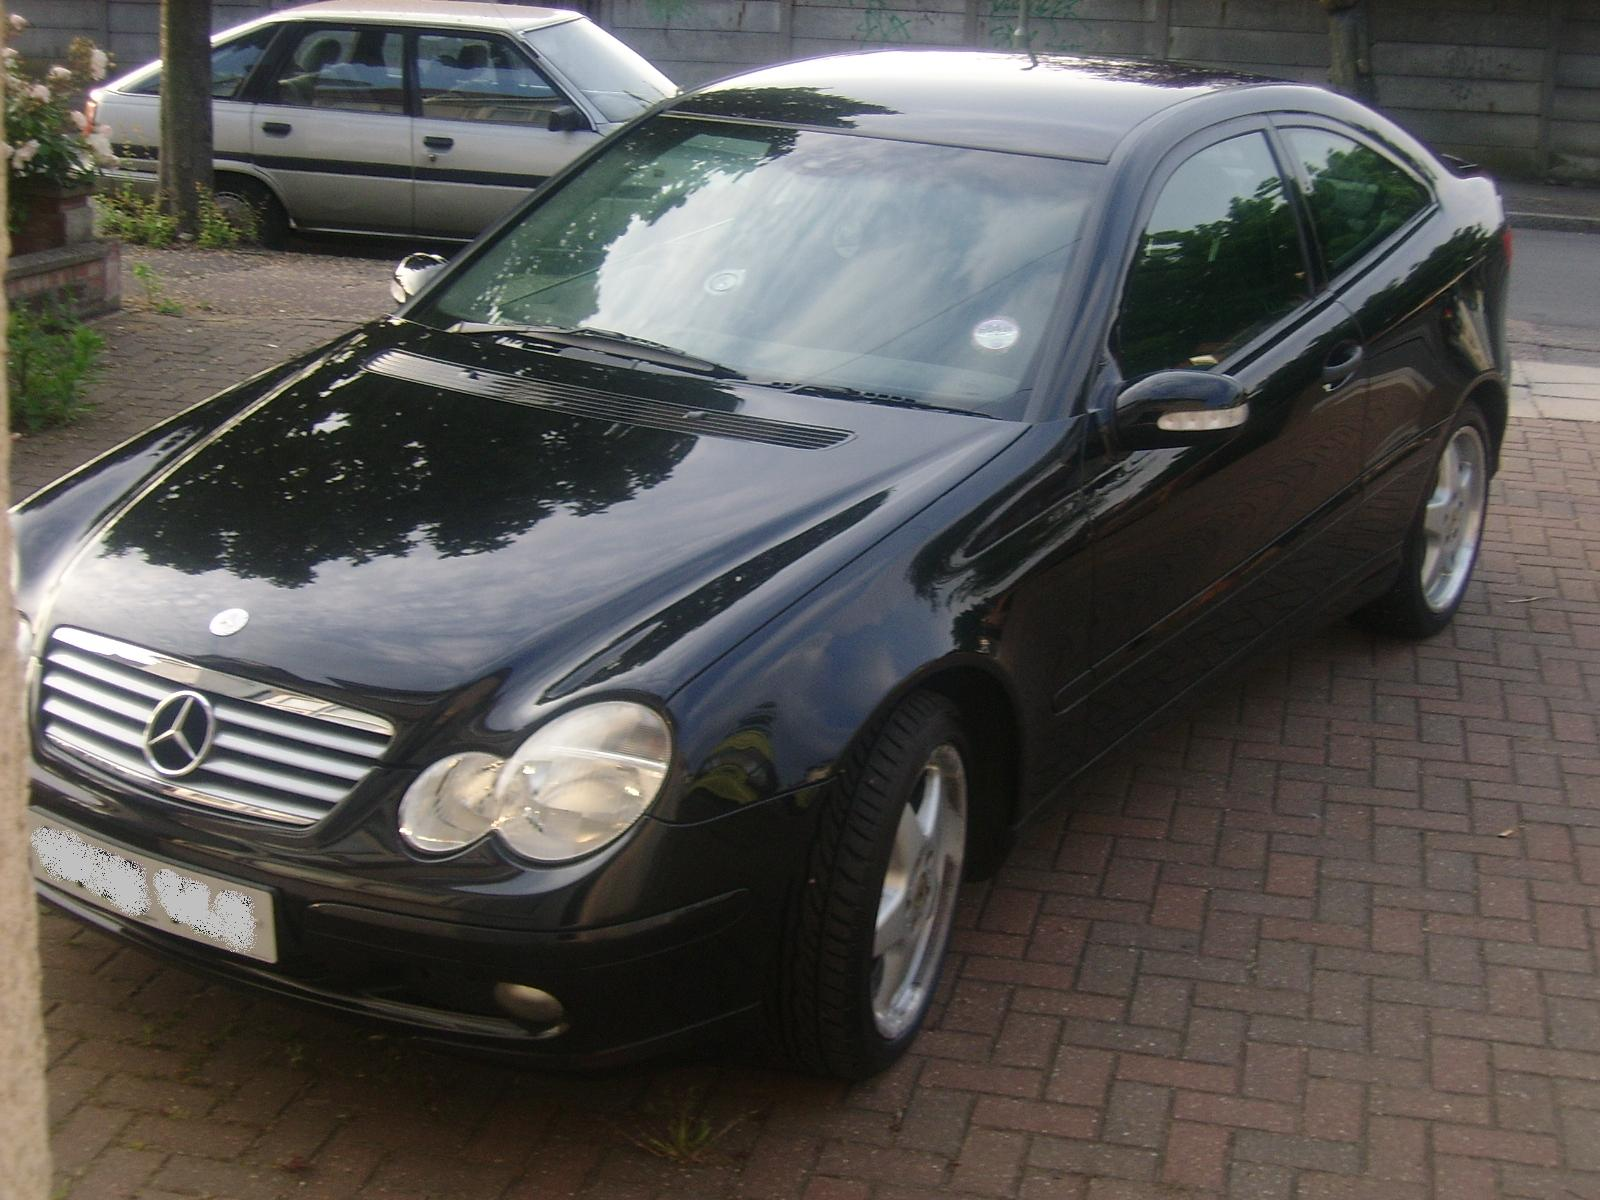 2002 mercedes benz c class other pictures cargurus for Mercedes benz hatchback c230